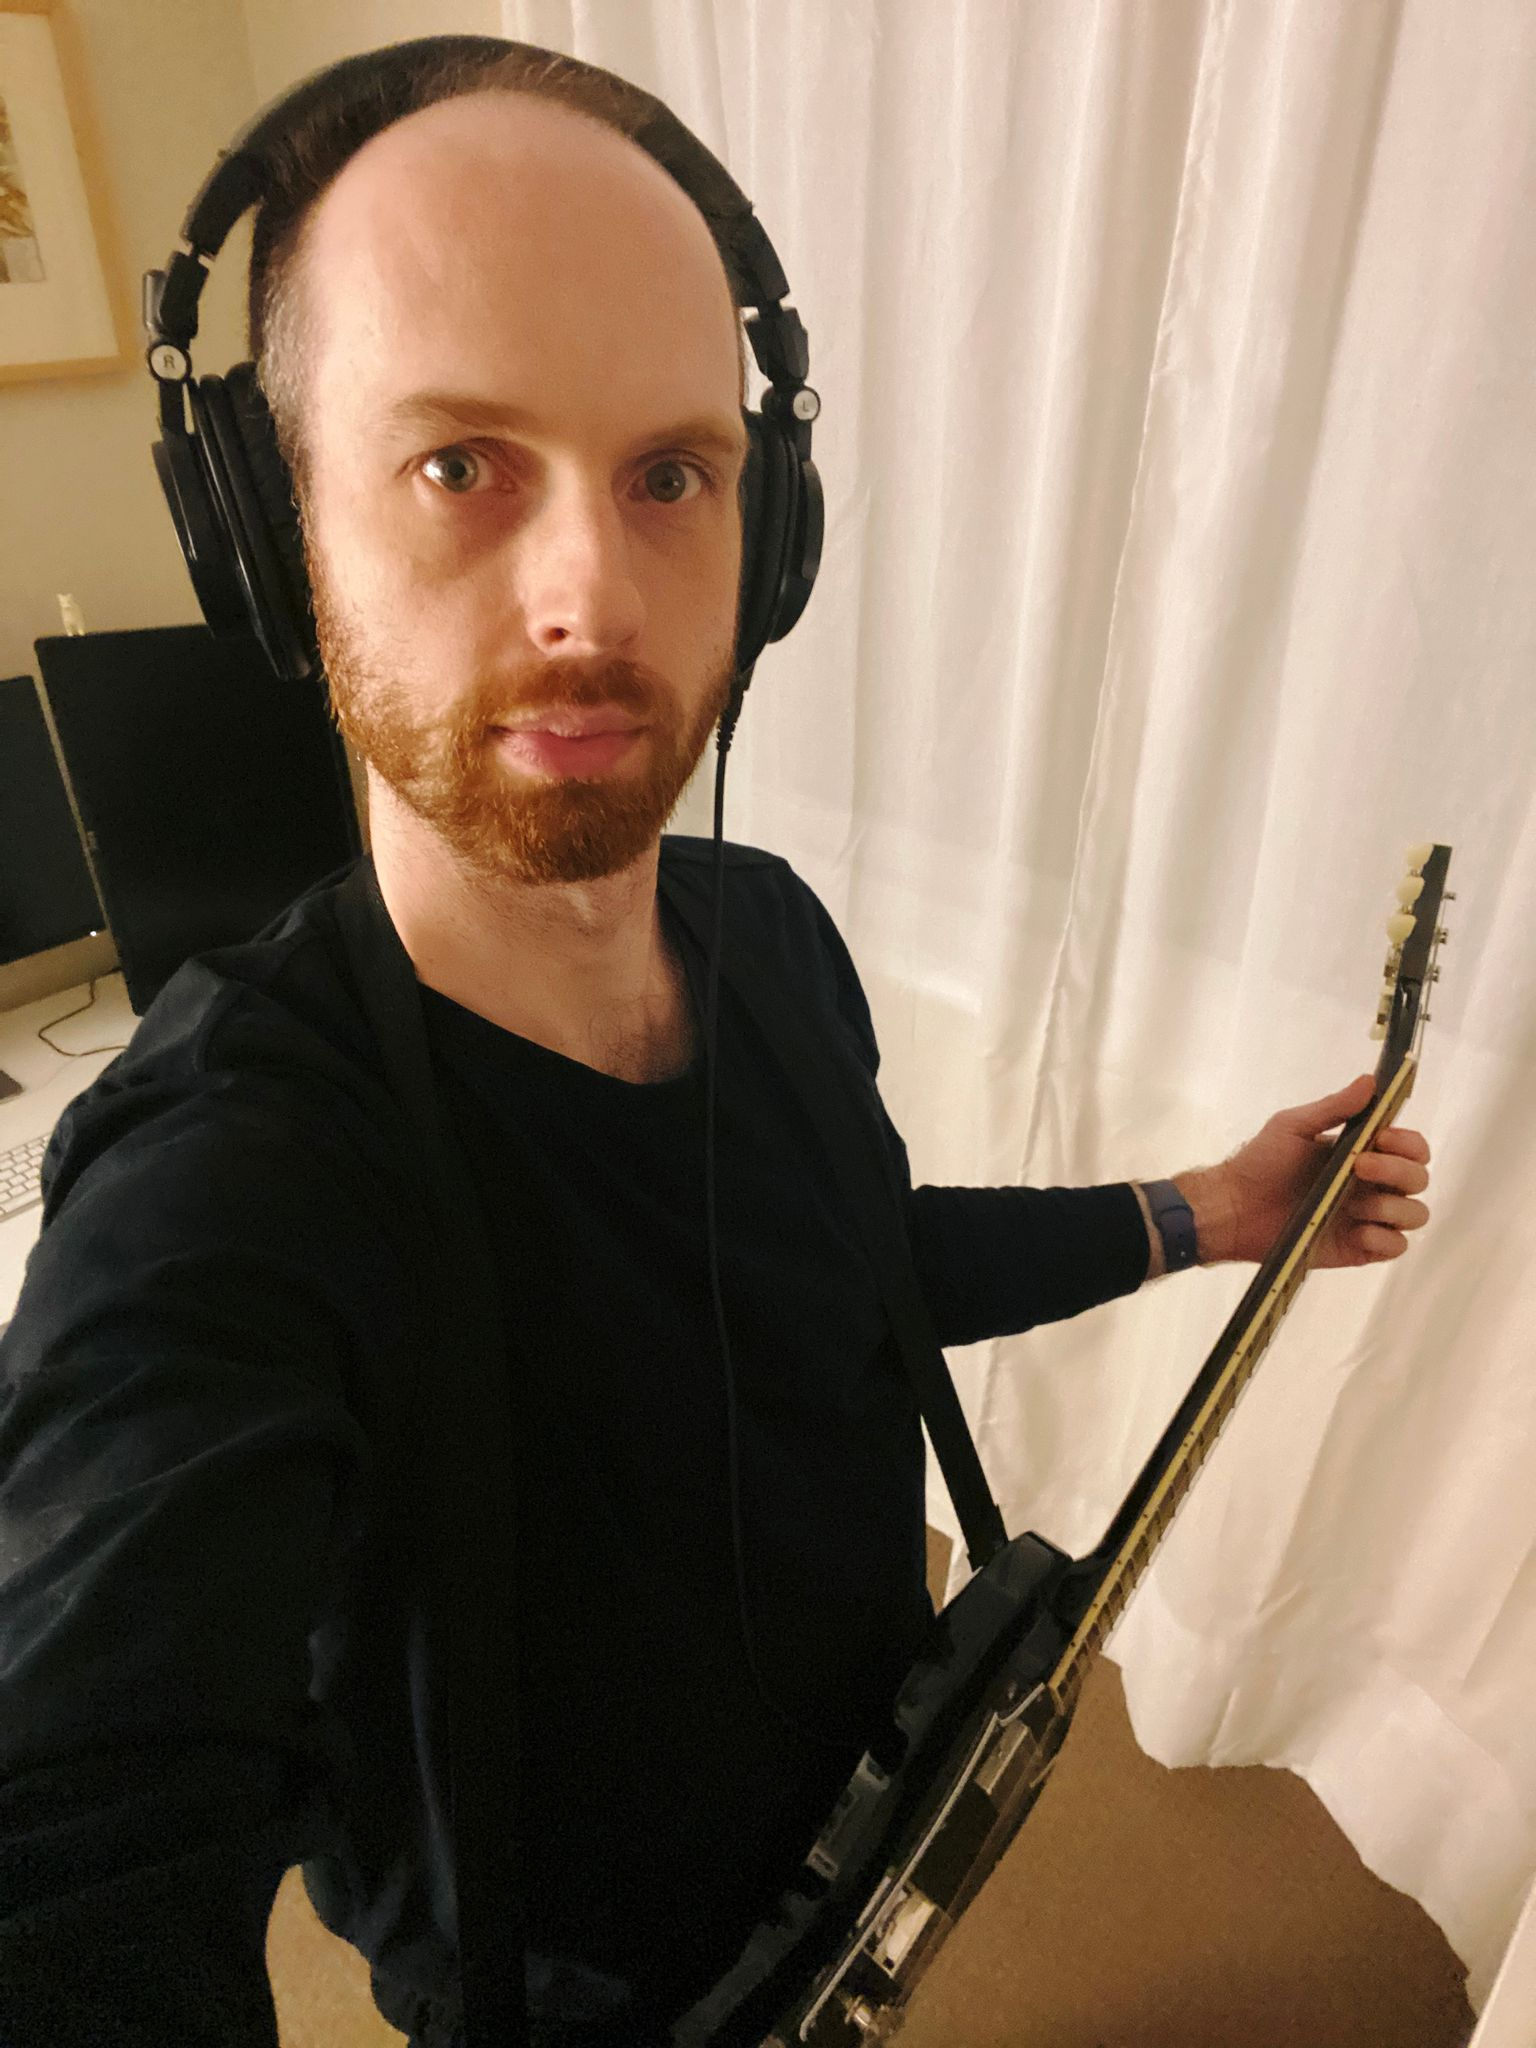 A selfie of me, a white man with a short red beard and short hair, standing with a black electric guitar and big headphones on.